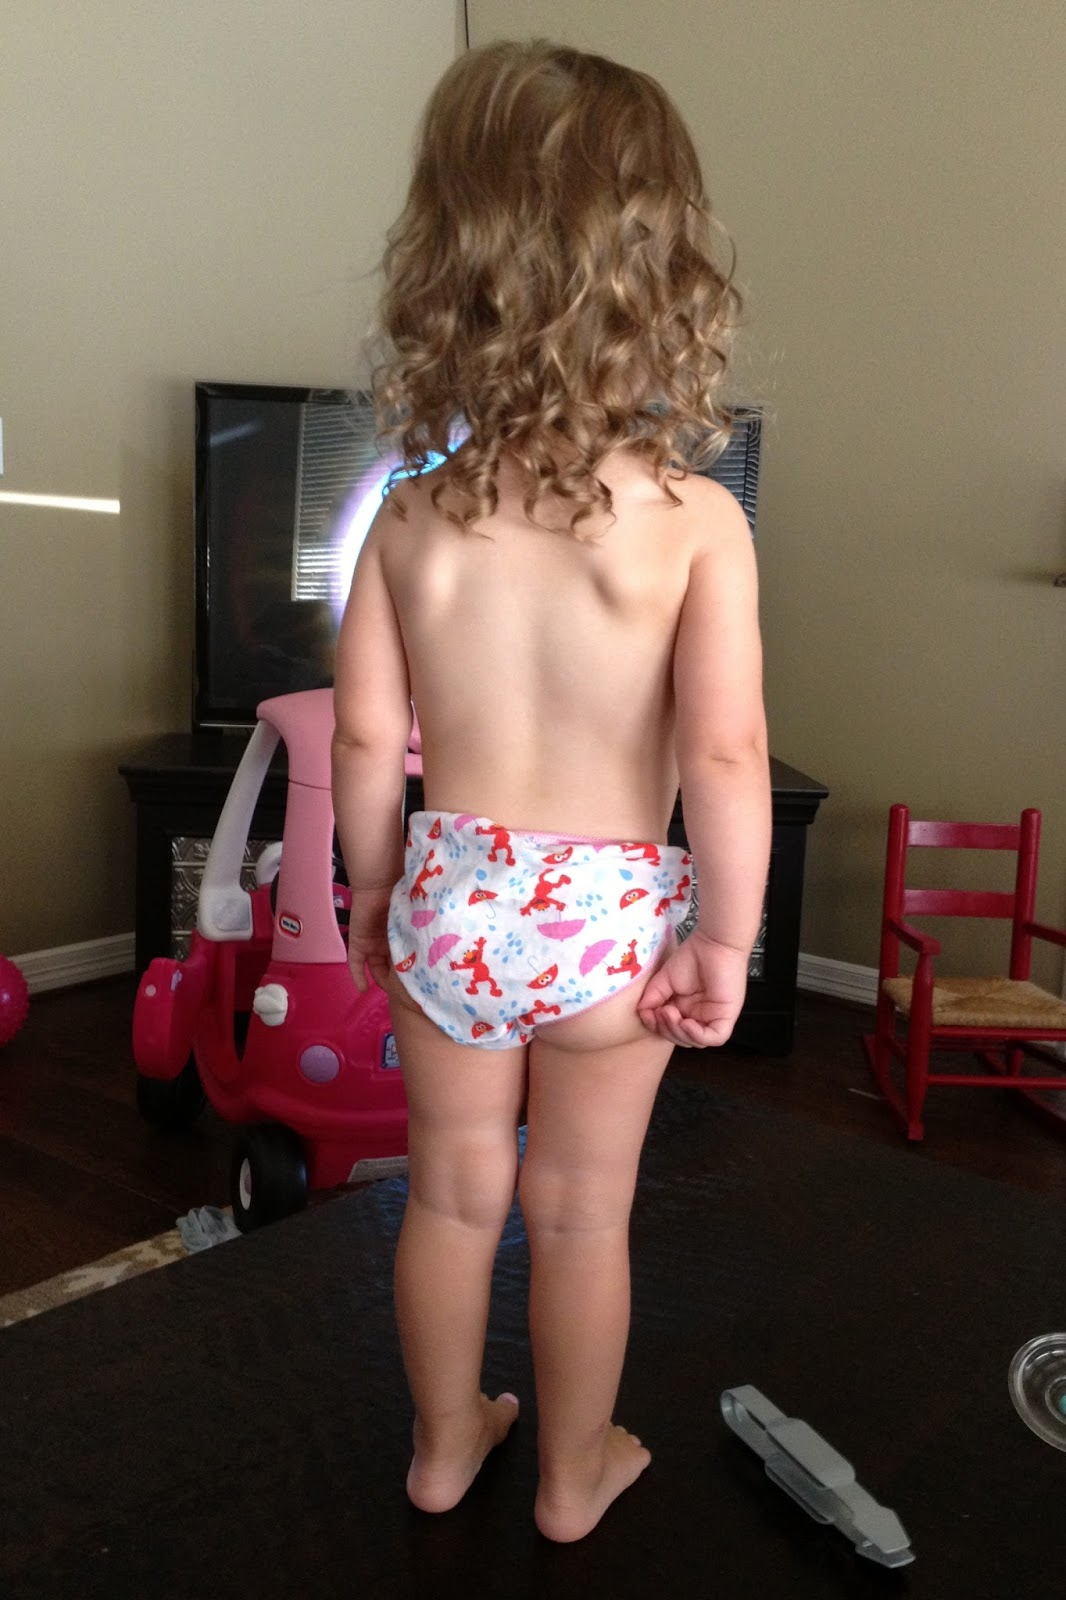 A little girl showing his body on camera 2